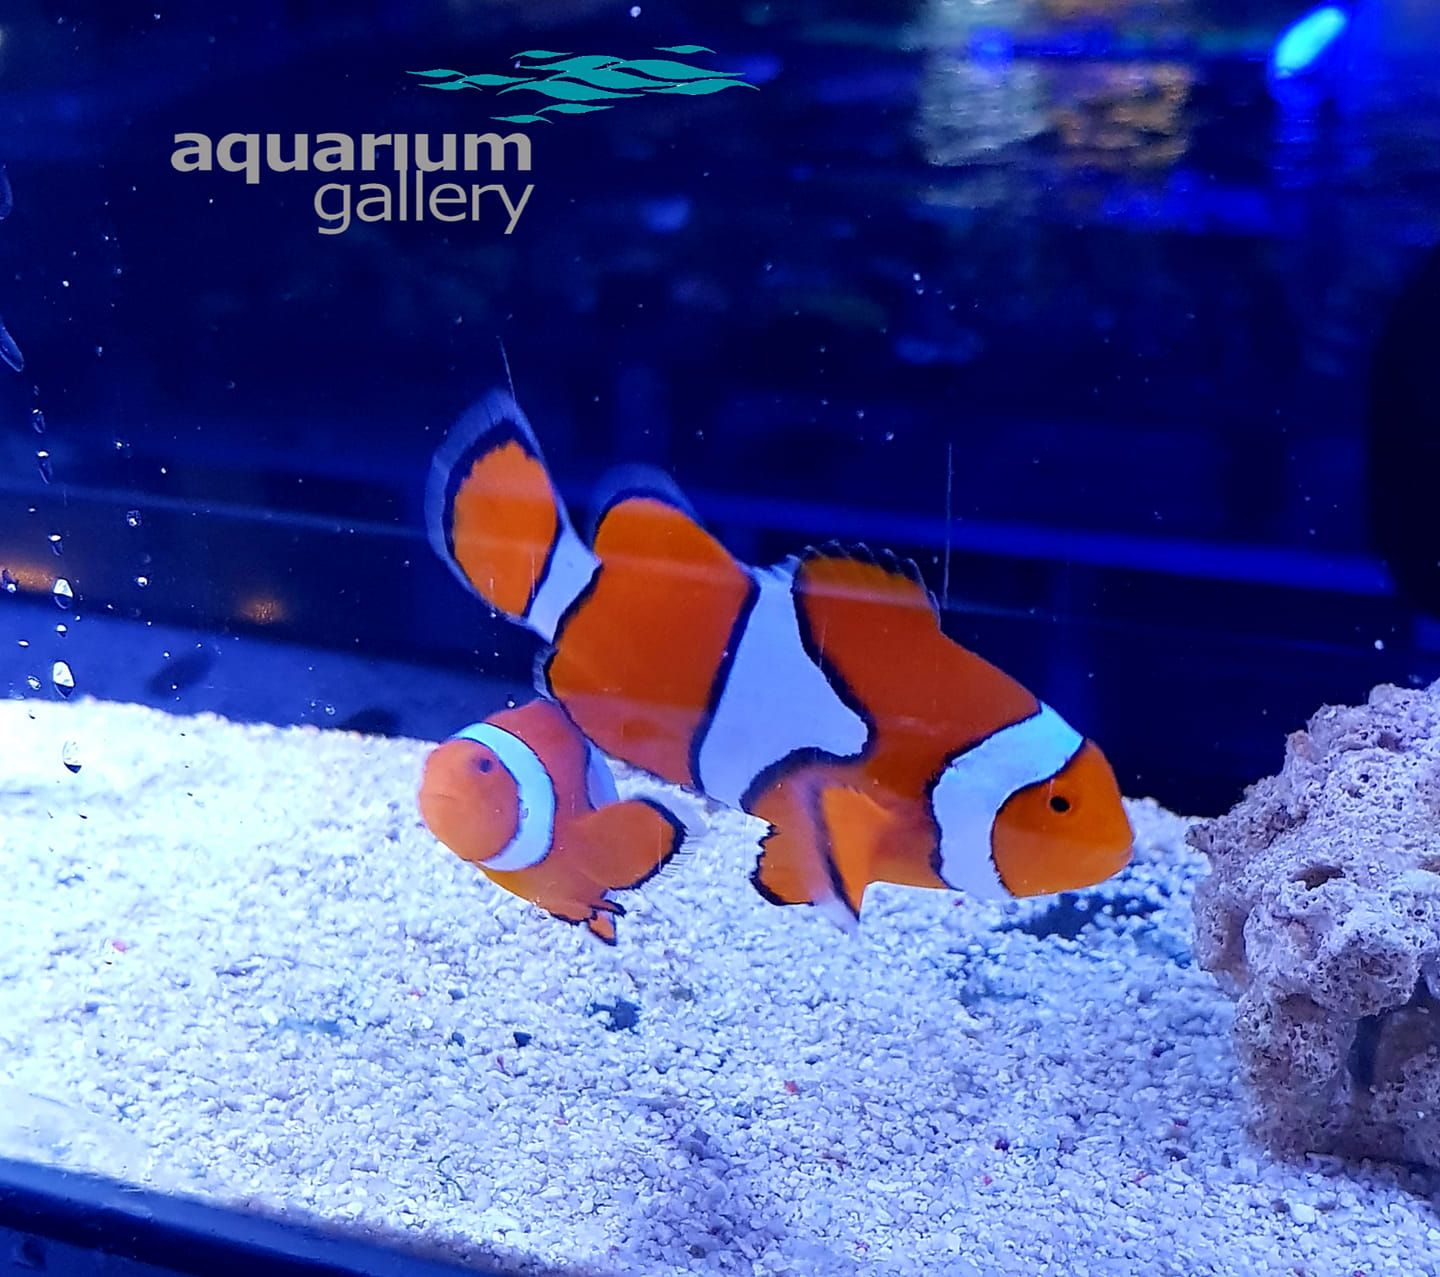 Aquarium Gallery Large Wild Ocellaris Pair One Of The Most Beloved And Popular Marine Fish The Ocellaris Clownfish Goes Marine Fish Clown Fish Pixar Films